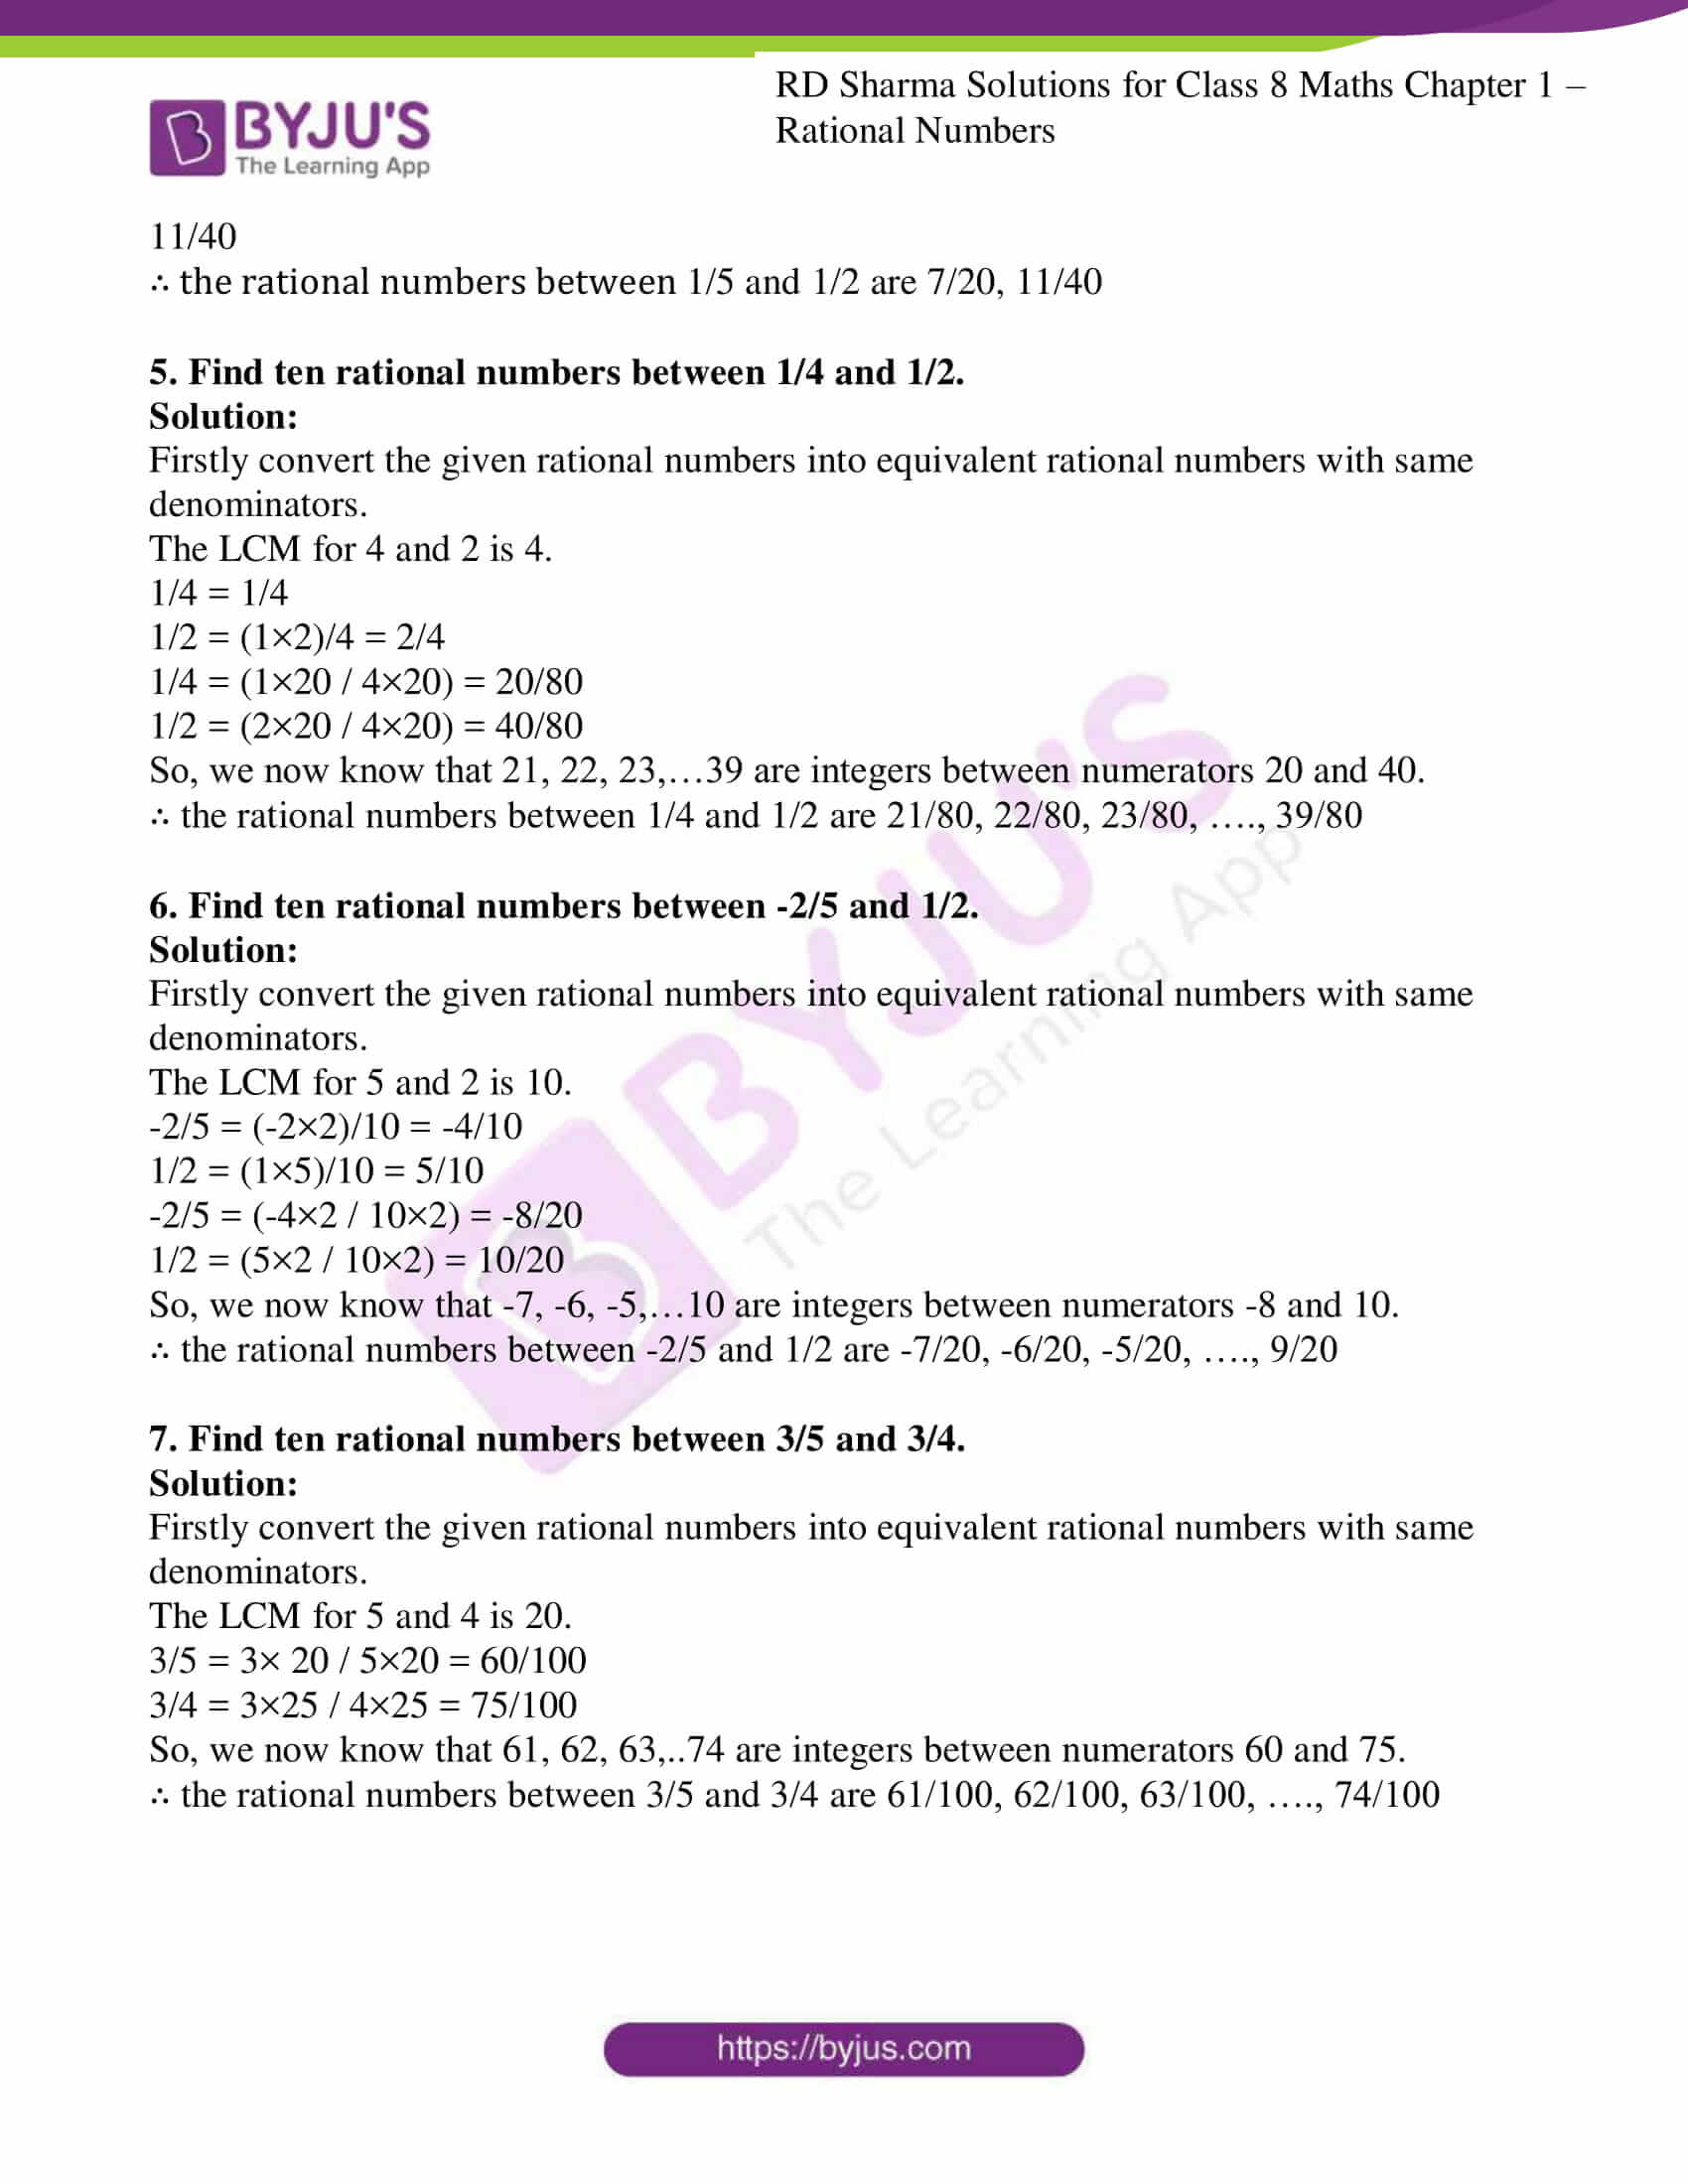 Rational Numbers Worksheet Grade 8 Cbse